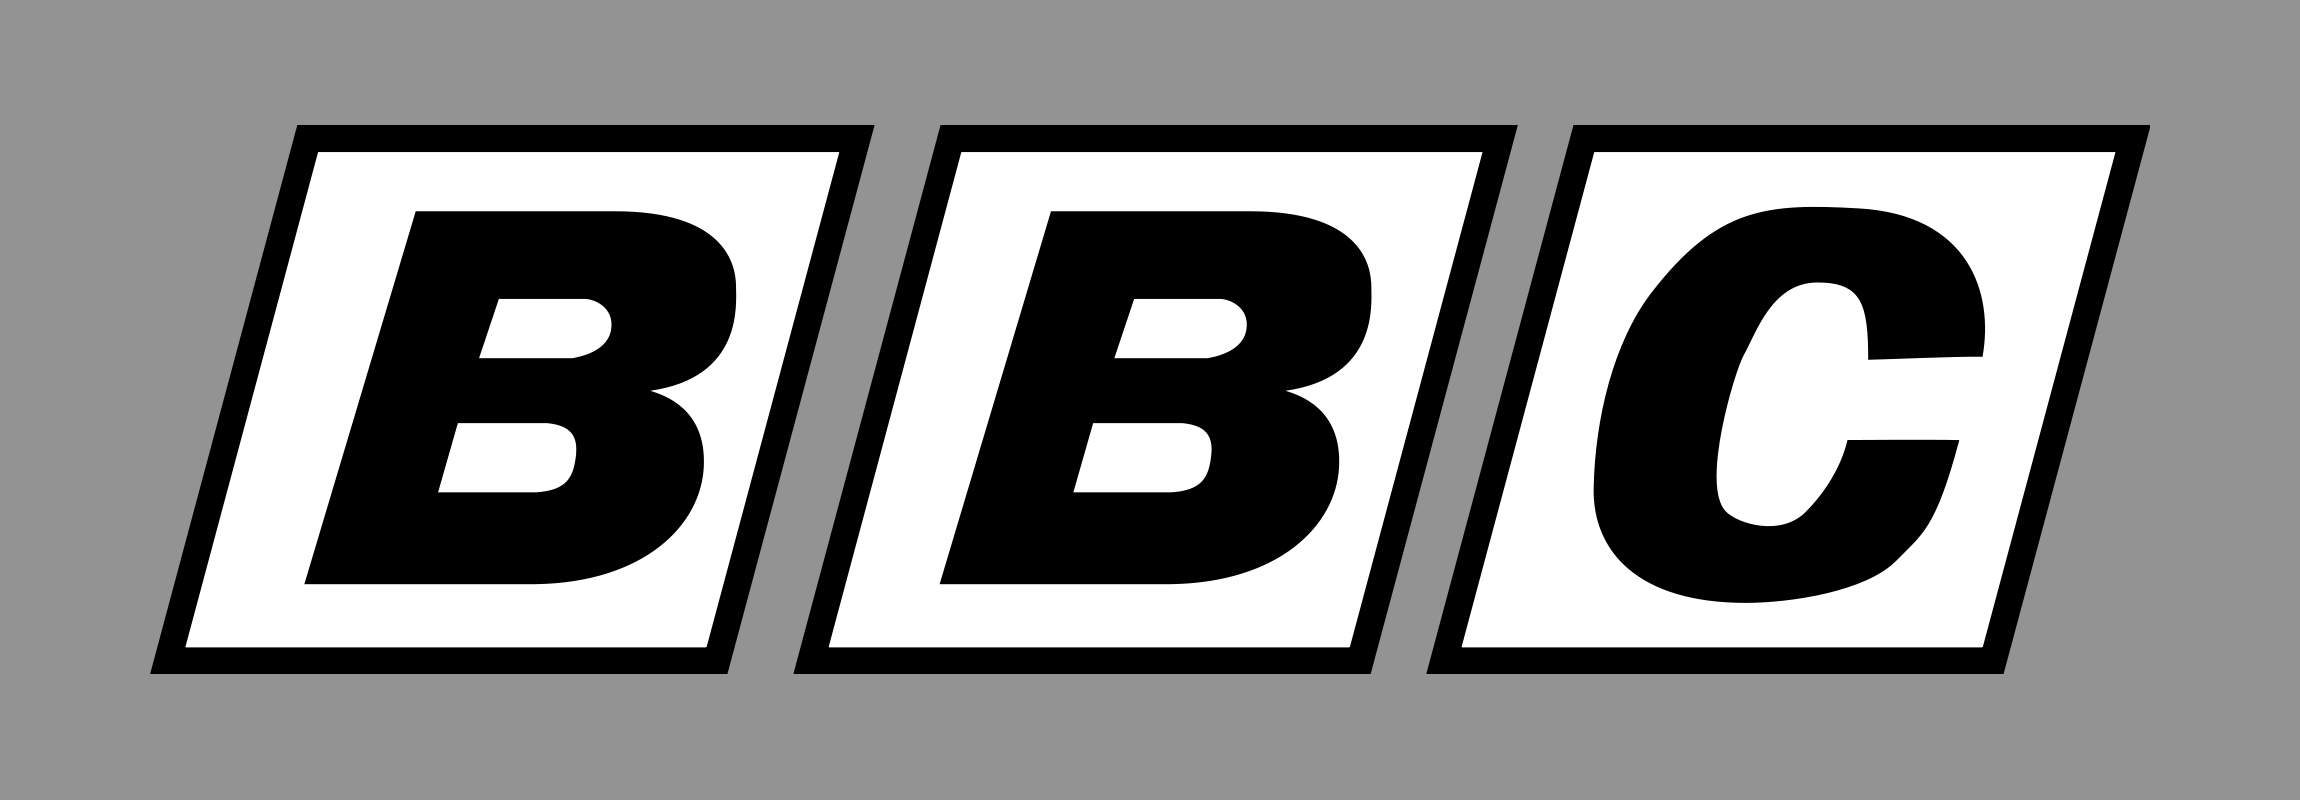 Bbc Picture: BBC Logo, BBC Symbol Meaning, History And Evolution